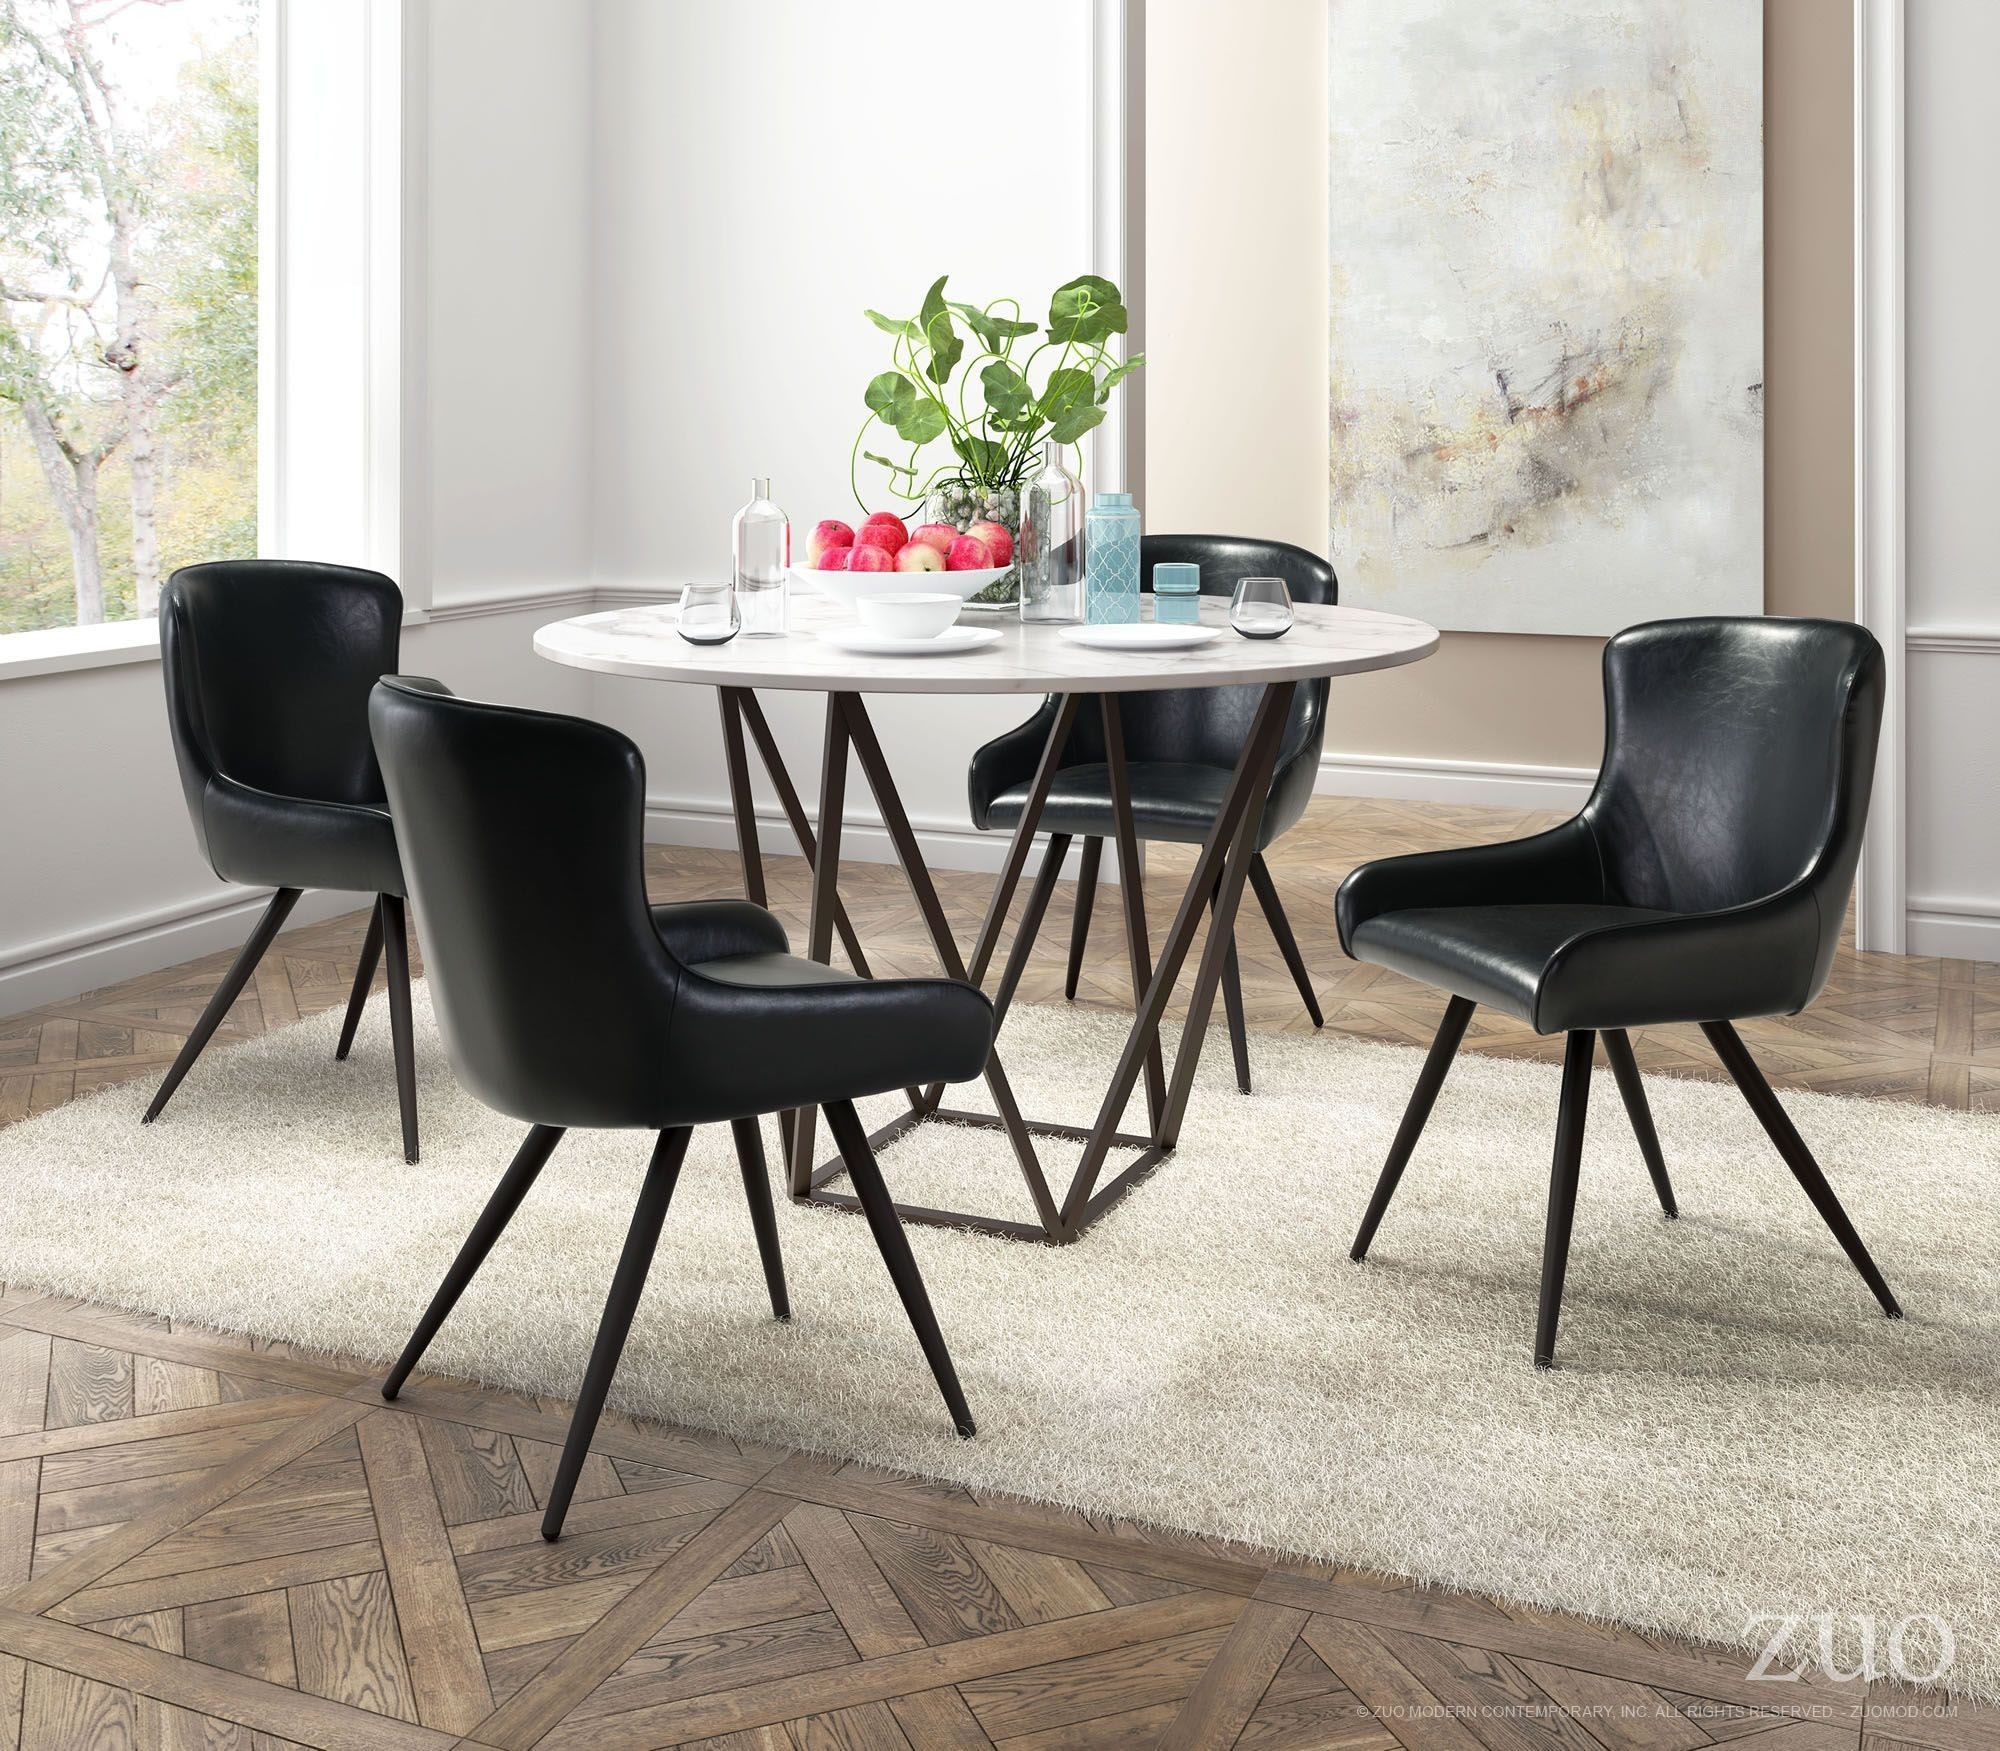 Tintern Stone And Antique Brass Steel Dining Table